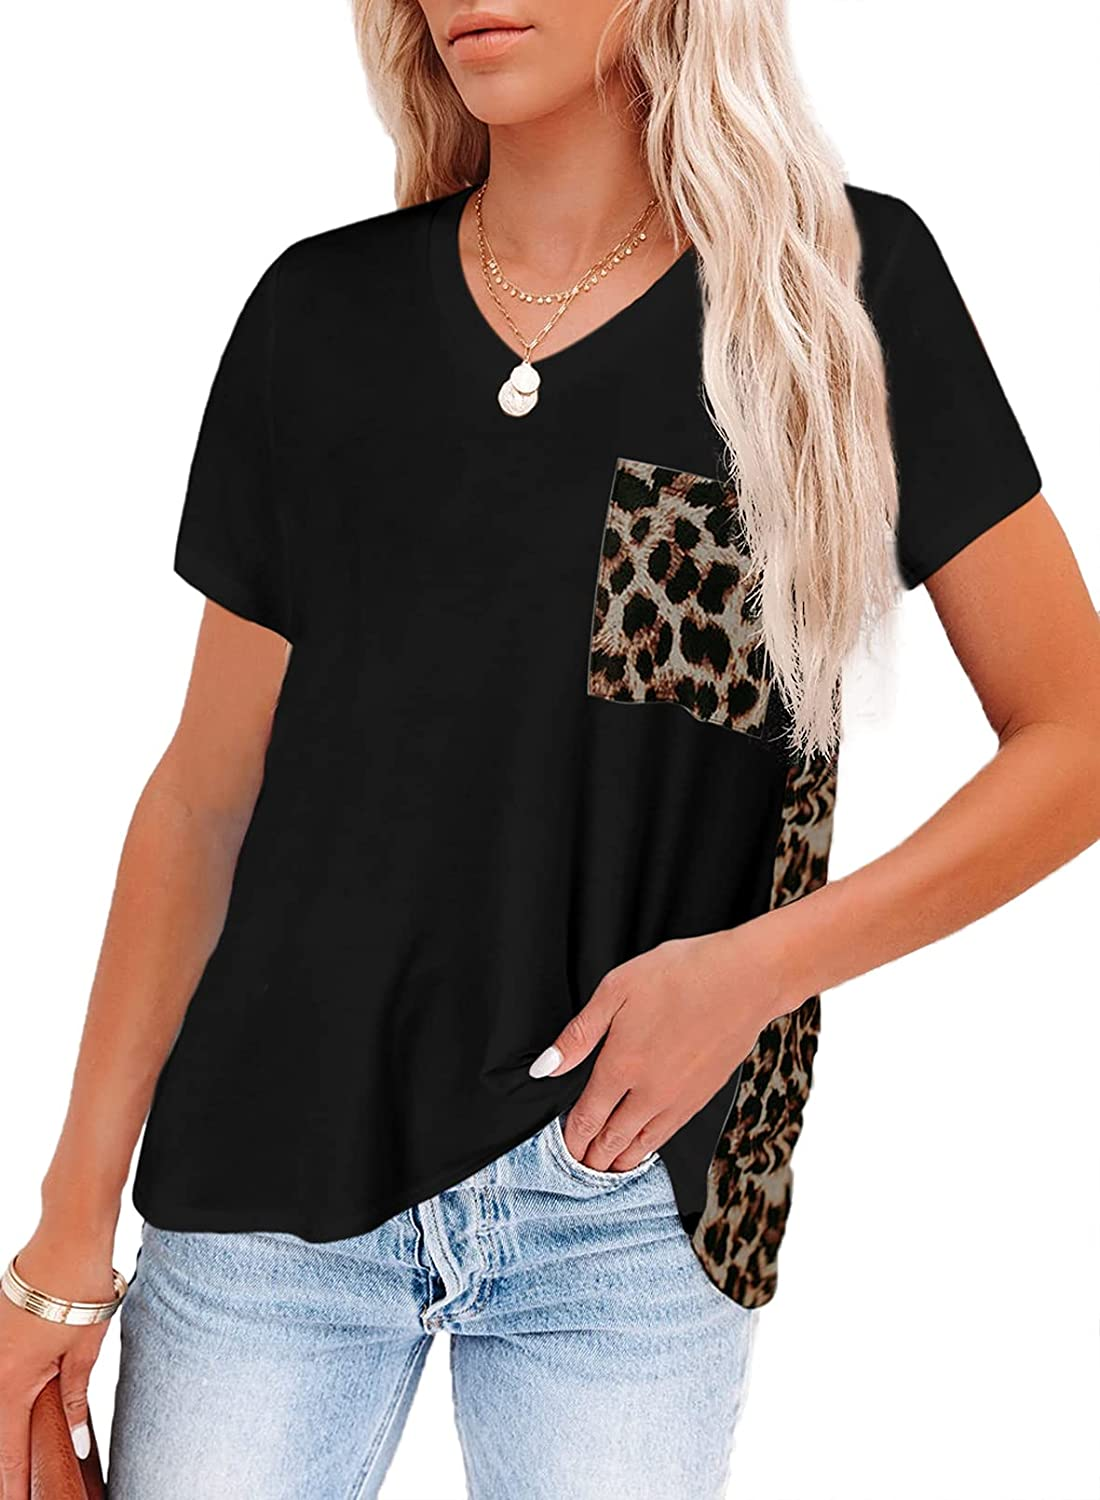 Chase Secret Women's Crew Neck Leopard Color Block Short Top Casual Loose Blouse Shirts with Pocket